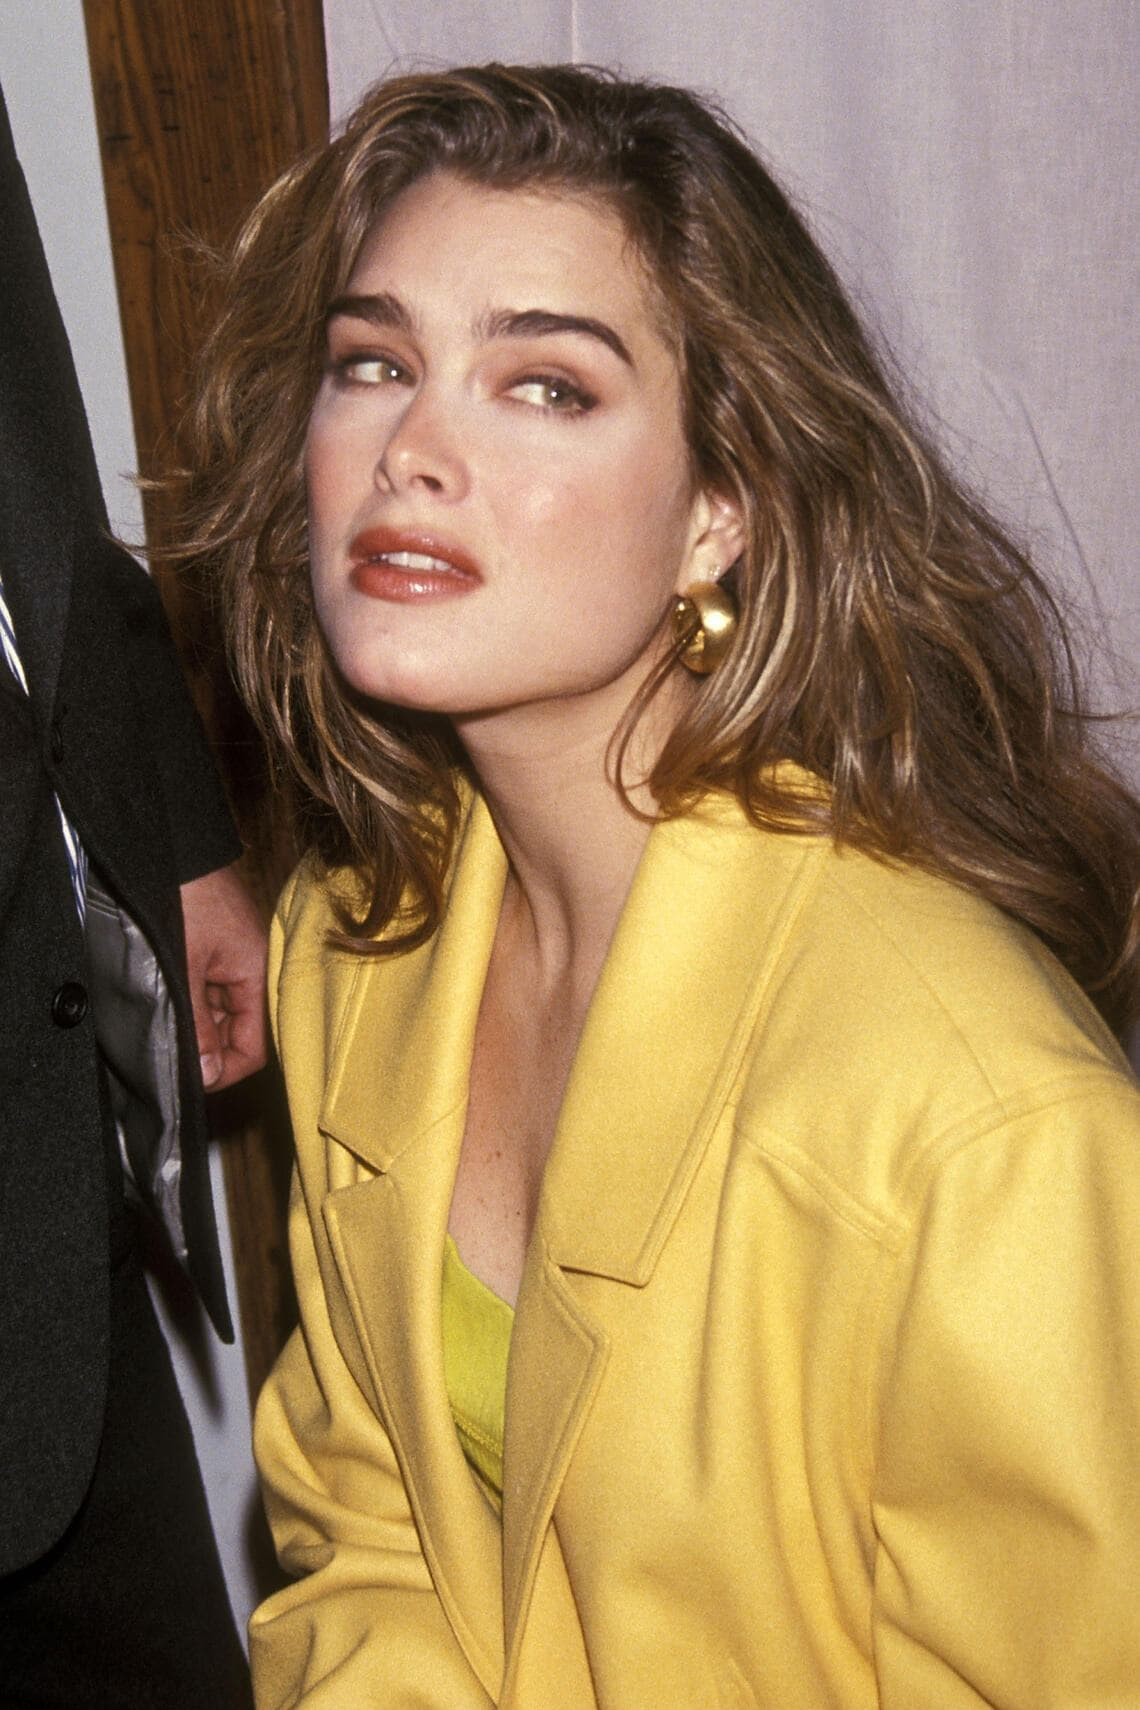 NEW YORK CITY - MARCH 20:   Actress Brooke Shields attends a press conference to announce her multi-year contract with Durasoft's Colored Contact Lenses on March 20, 1992 at the Tavern on the Green in New York City. (Photo by Ron Galella, Ltd./Ron Galella Collection via Getty Images)